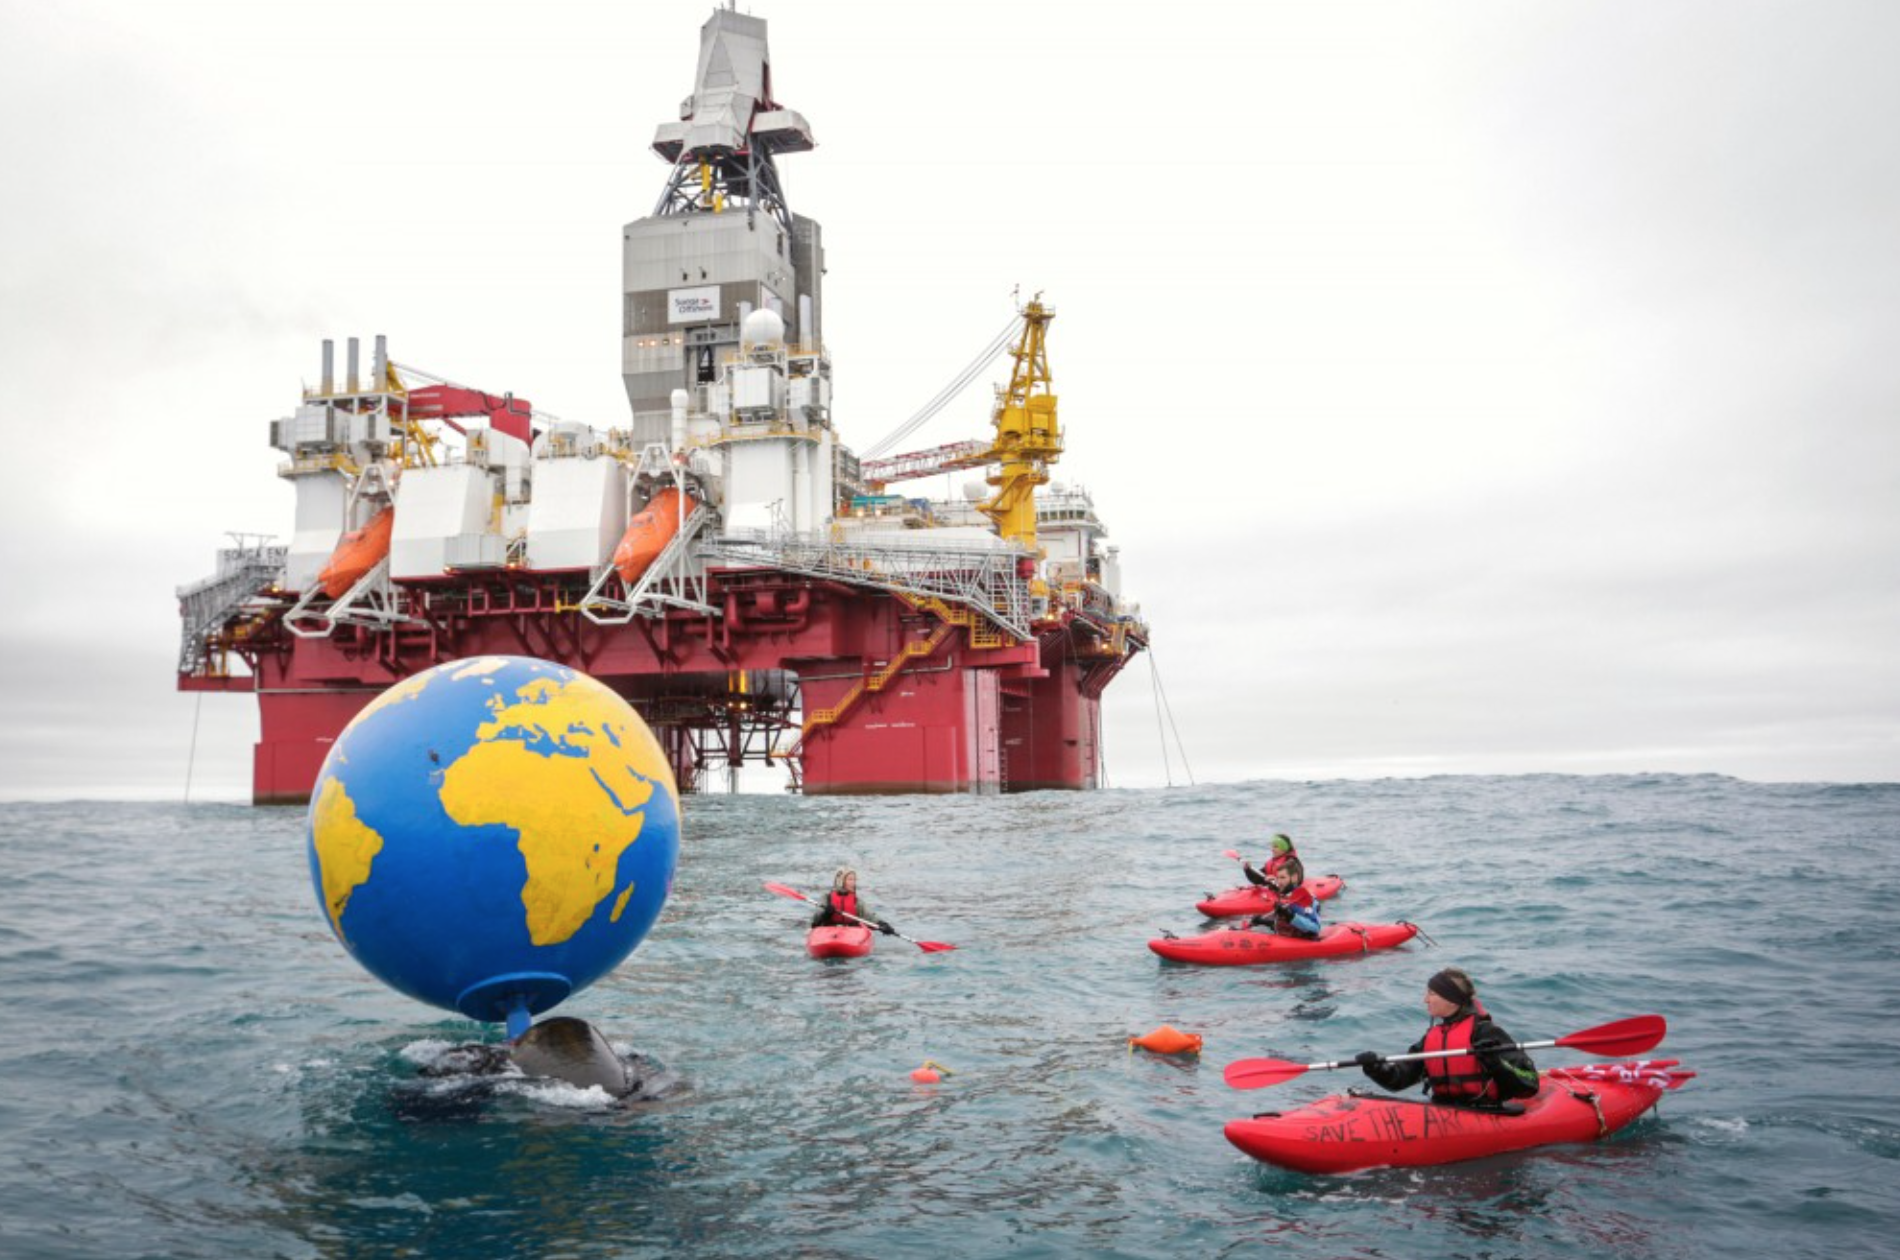 greenpeaceoilprotest